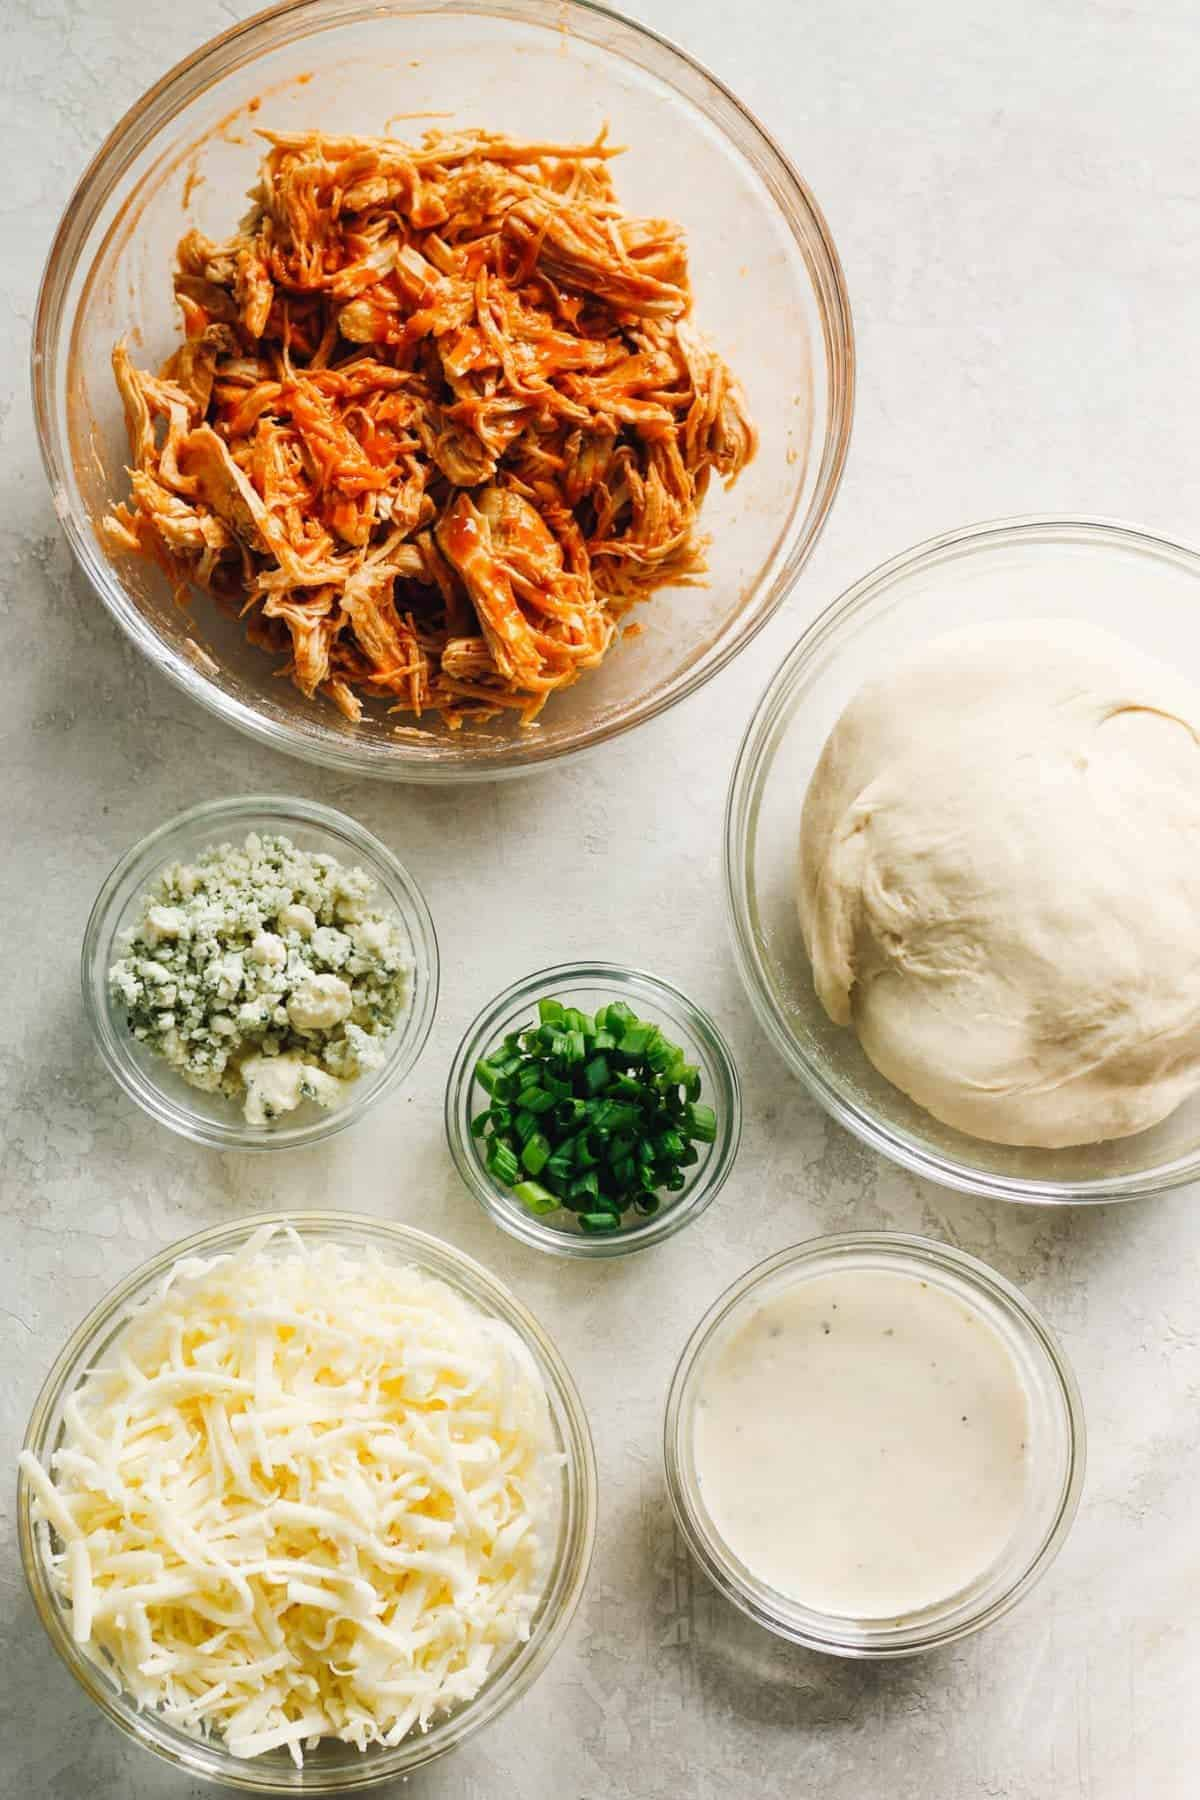 Ingredients for the pizza topping